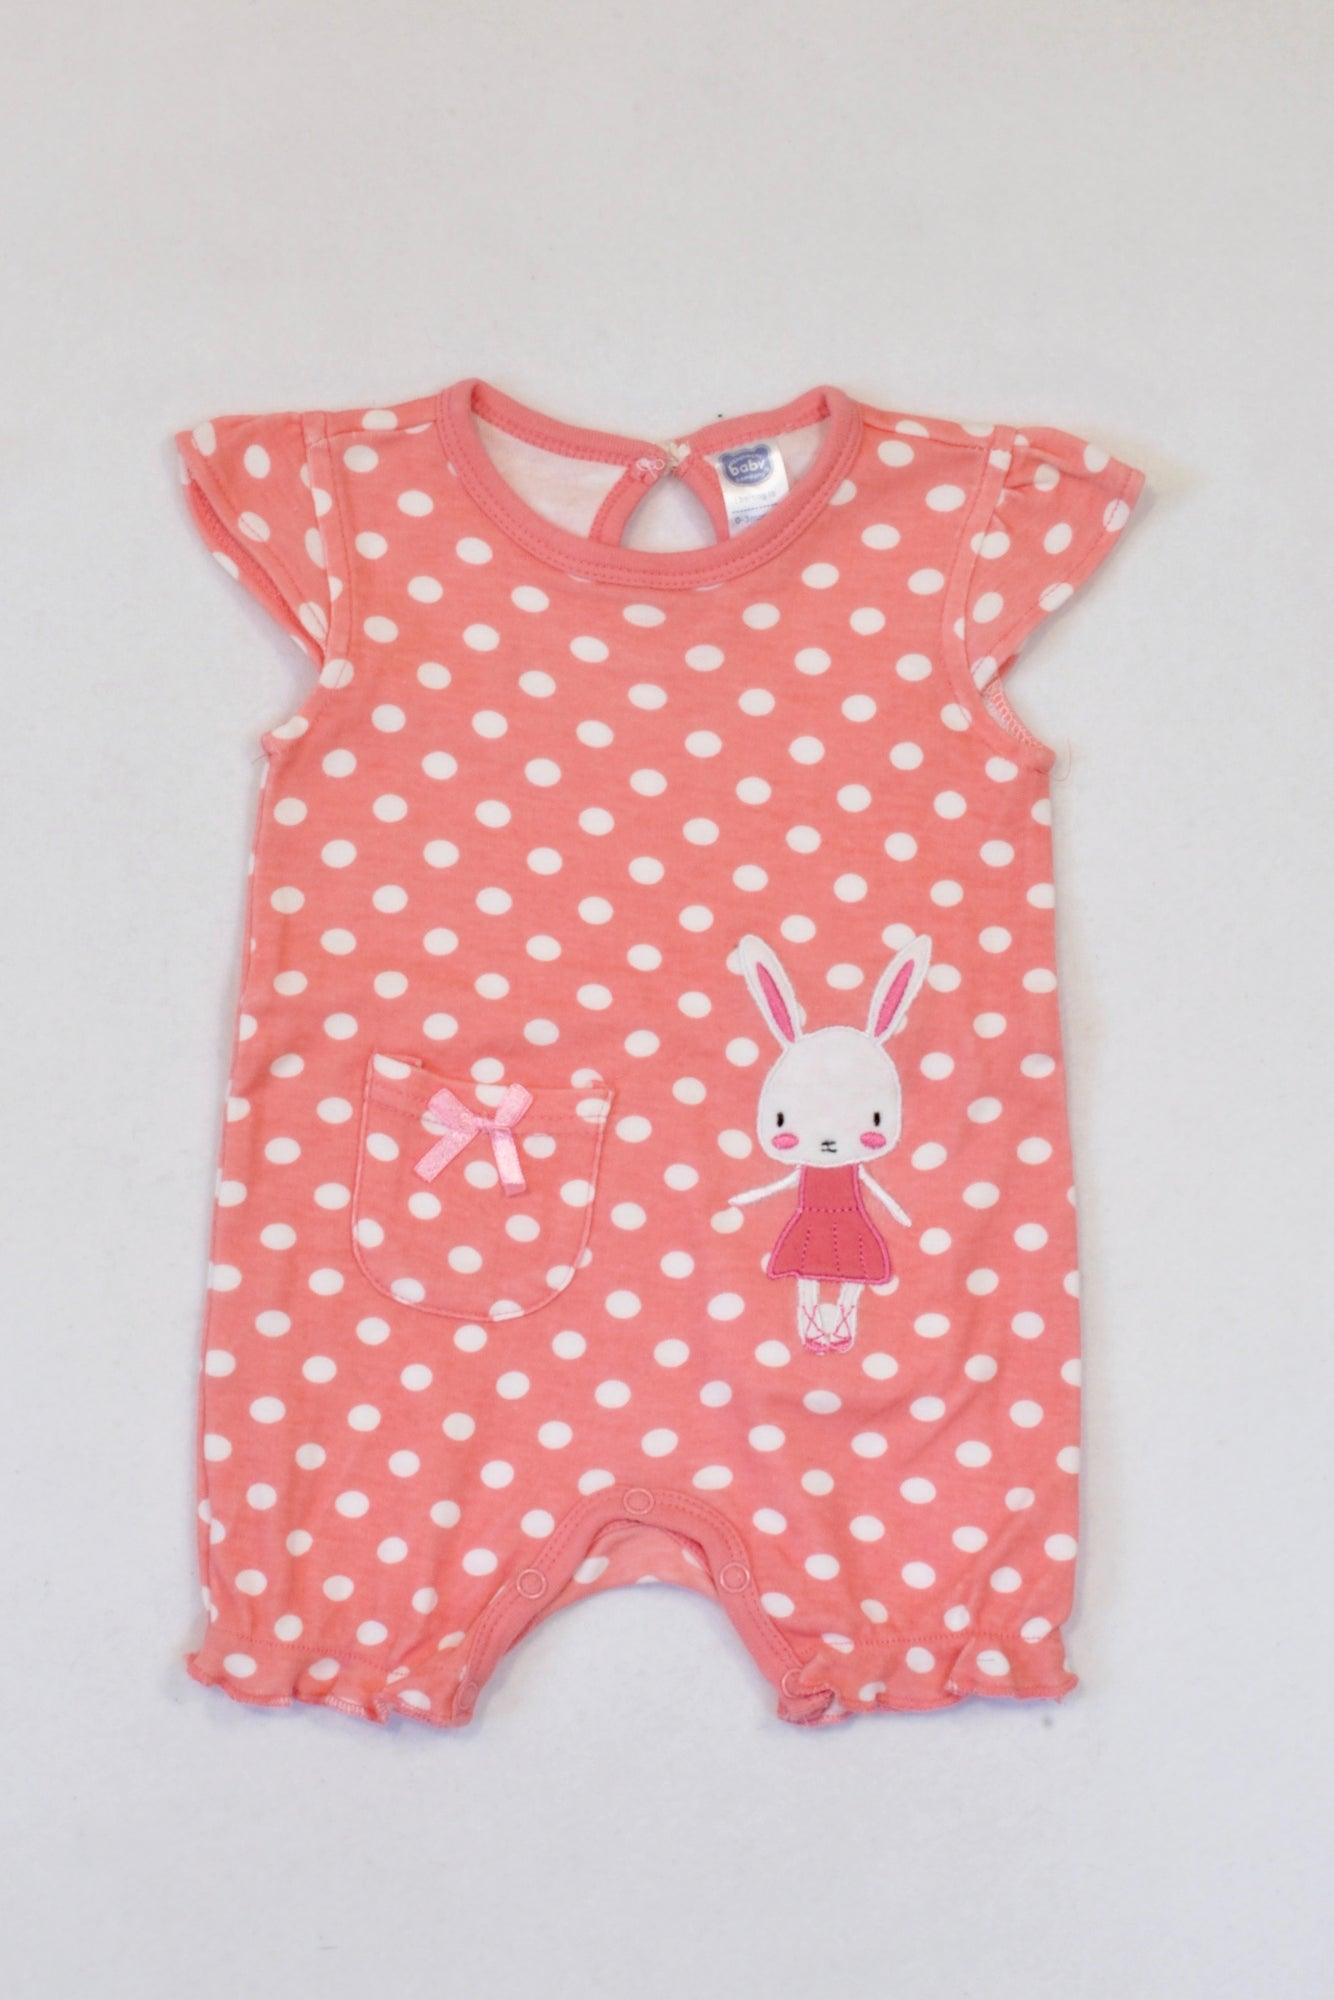 Ackermans Peach Bunny Dotty Romper Girls 0-3 months